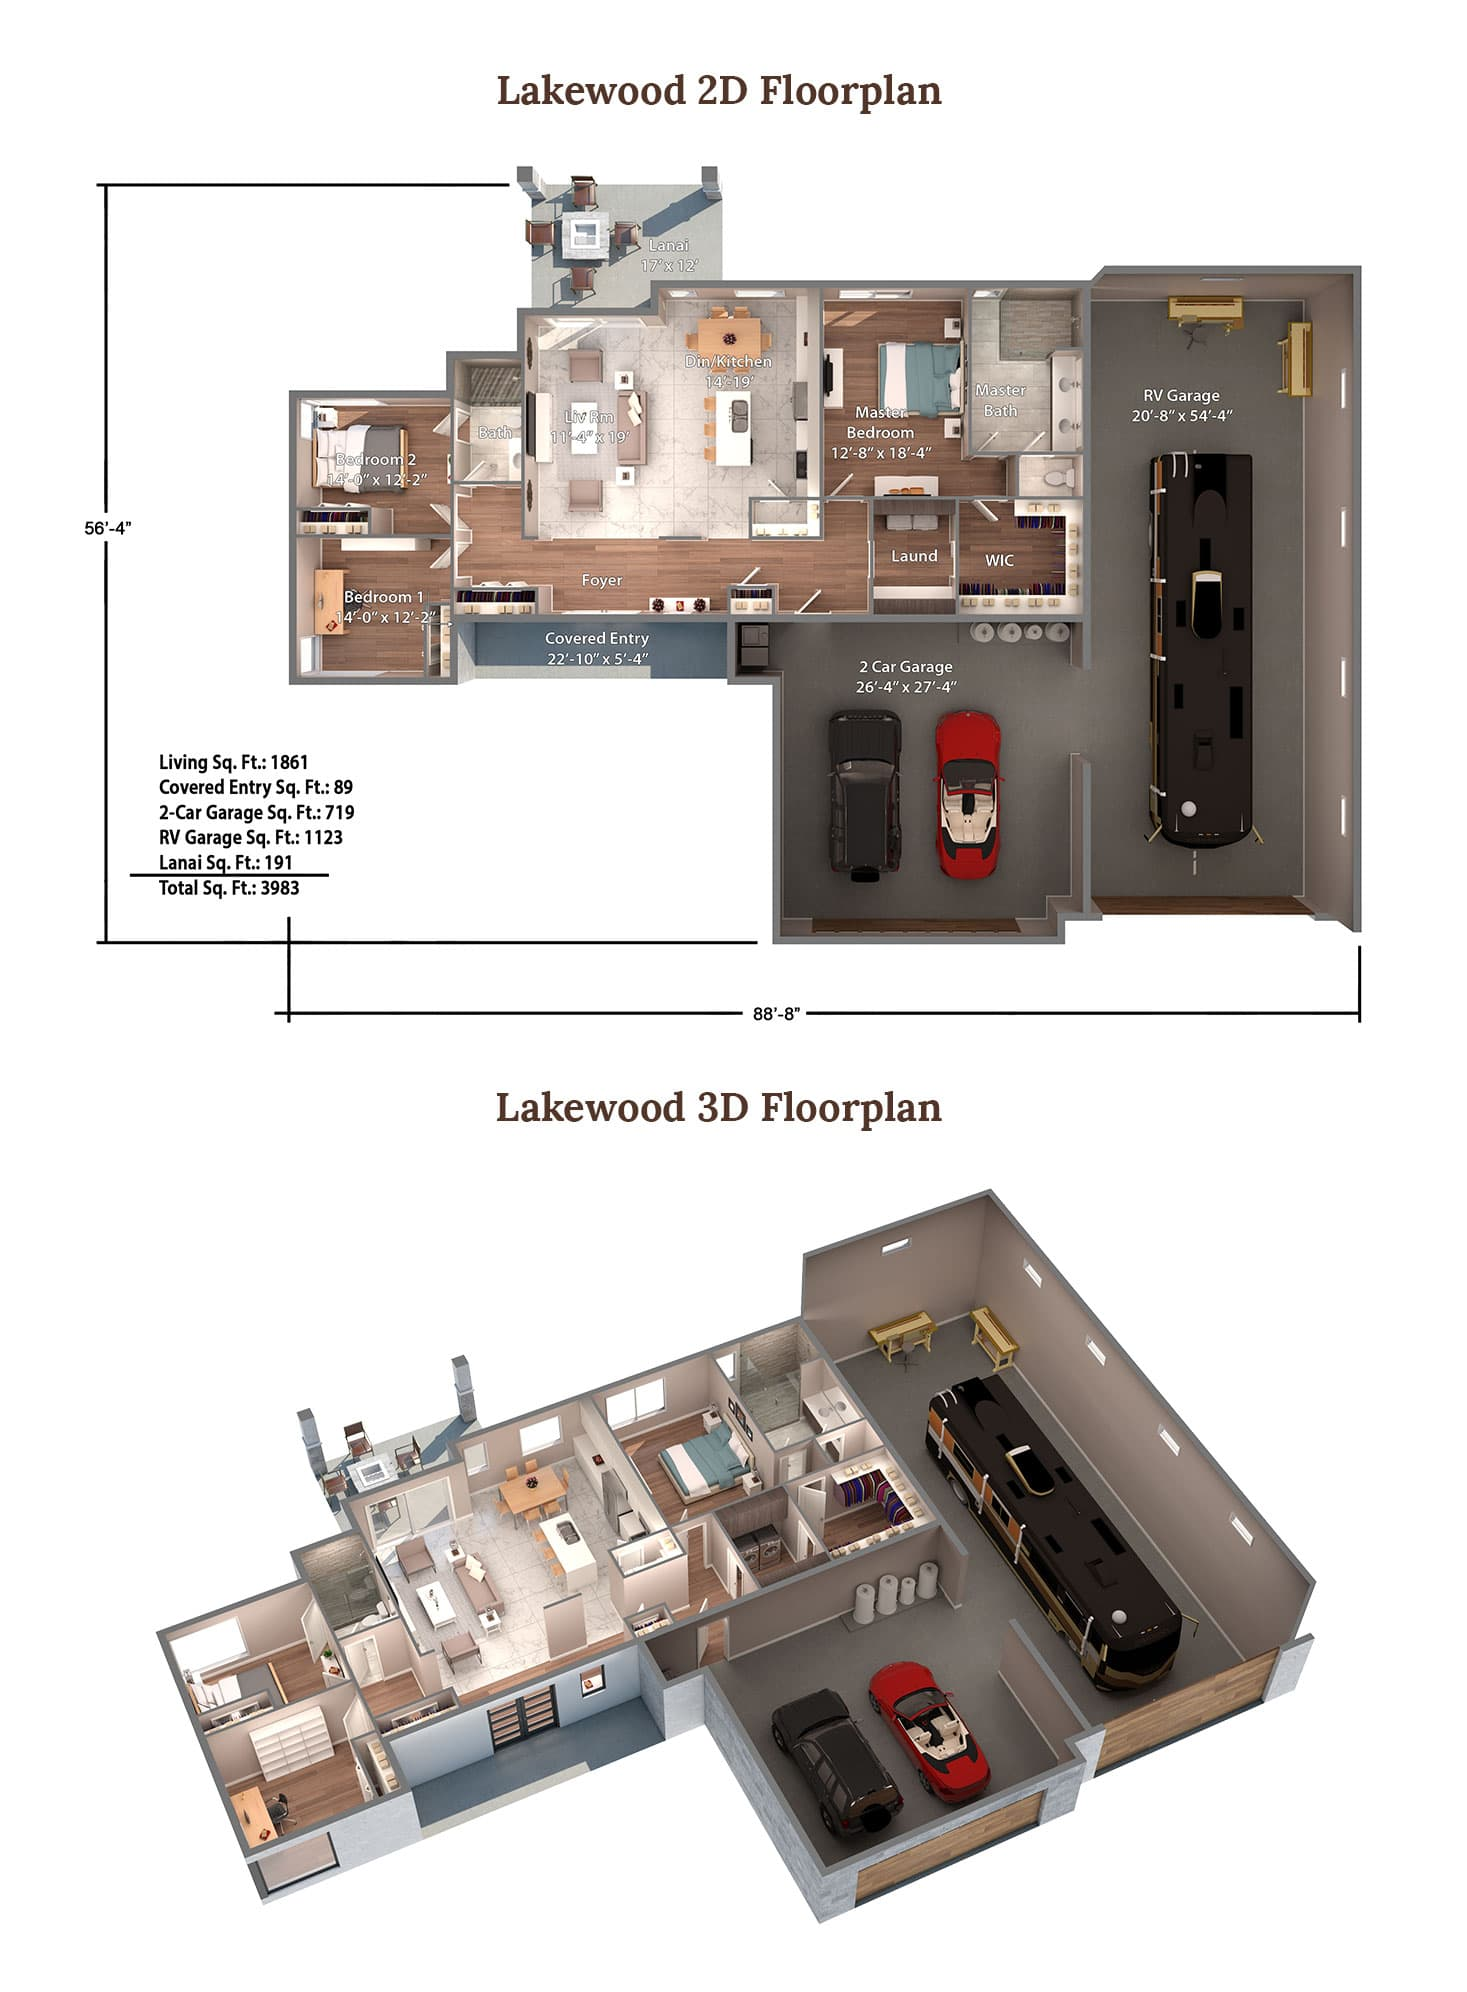 Lakewood Floorplan